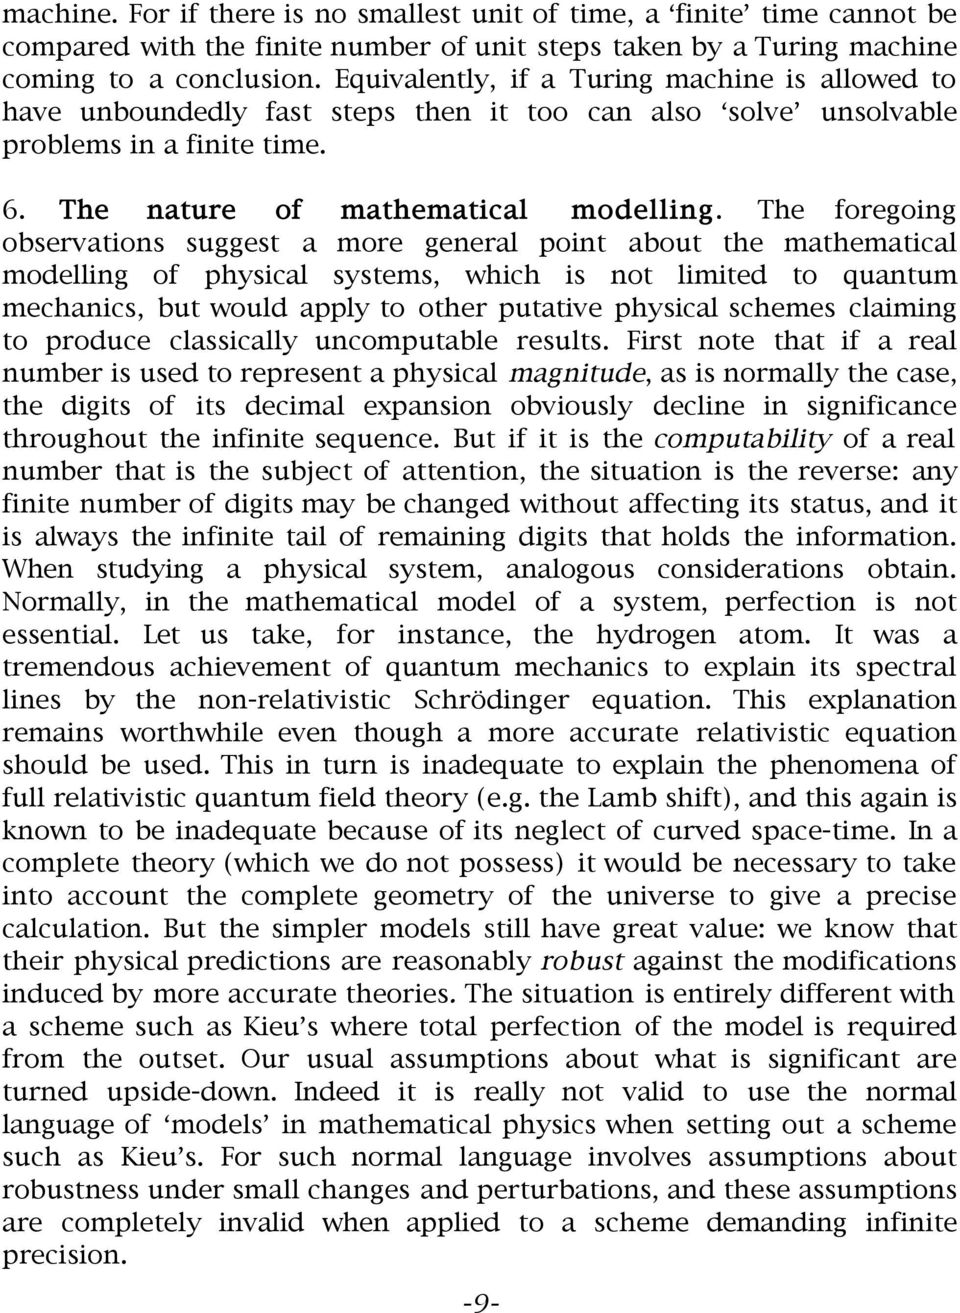 The foregoing observations suggest a more general point about the mathematical modelling of physical systems, which is not limited to quantum mechanics, but would apply to other putative physical